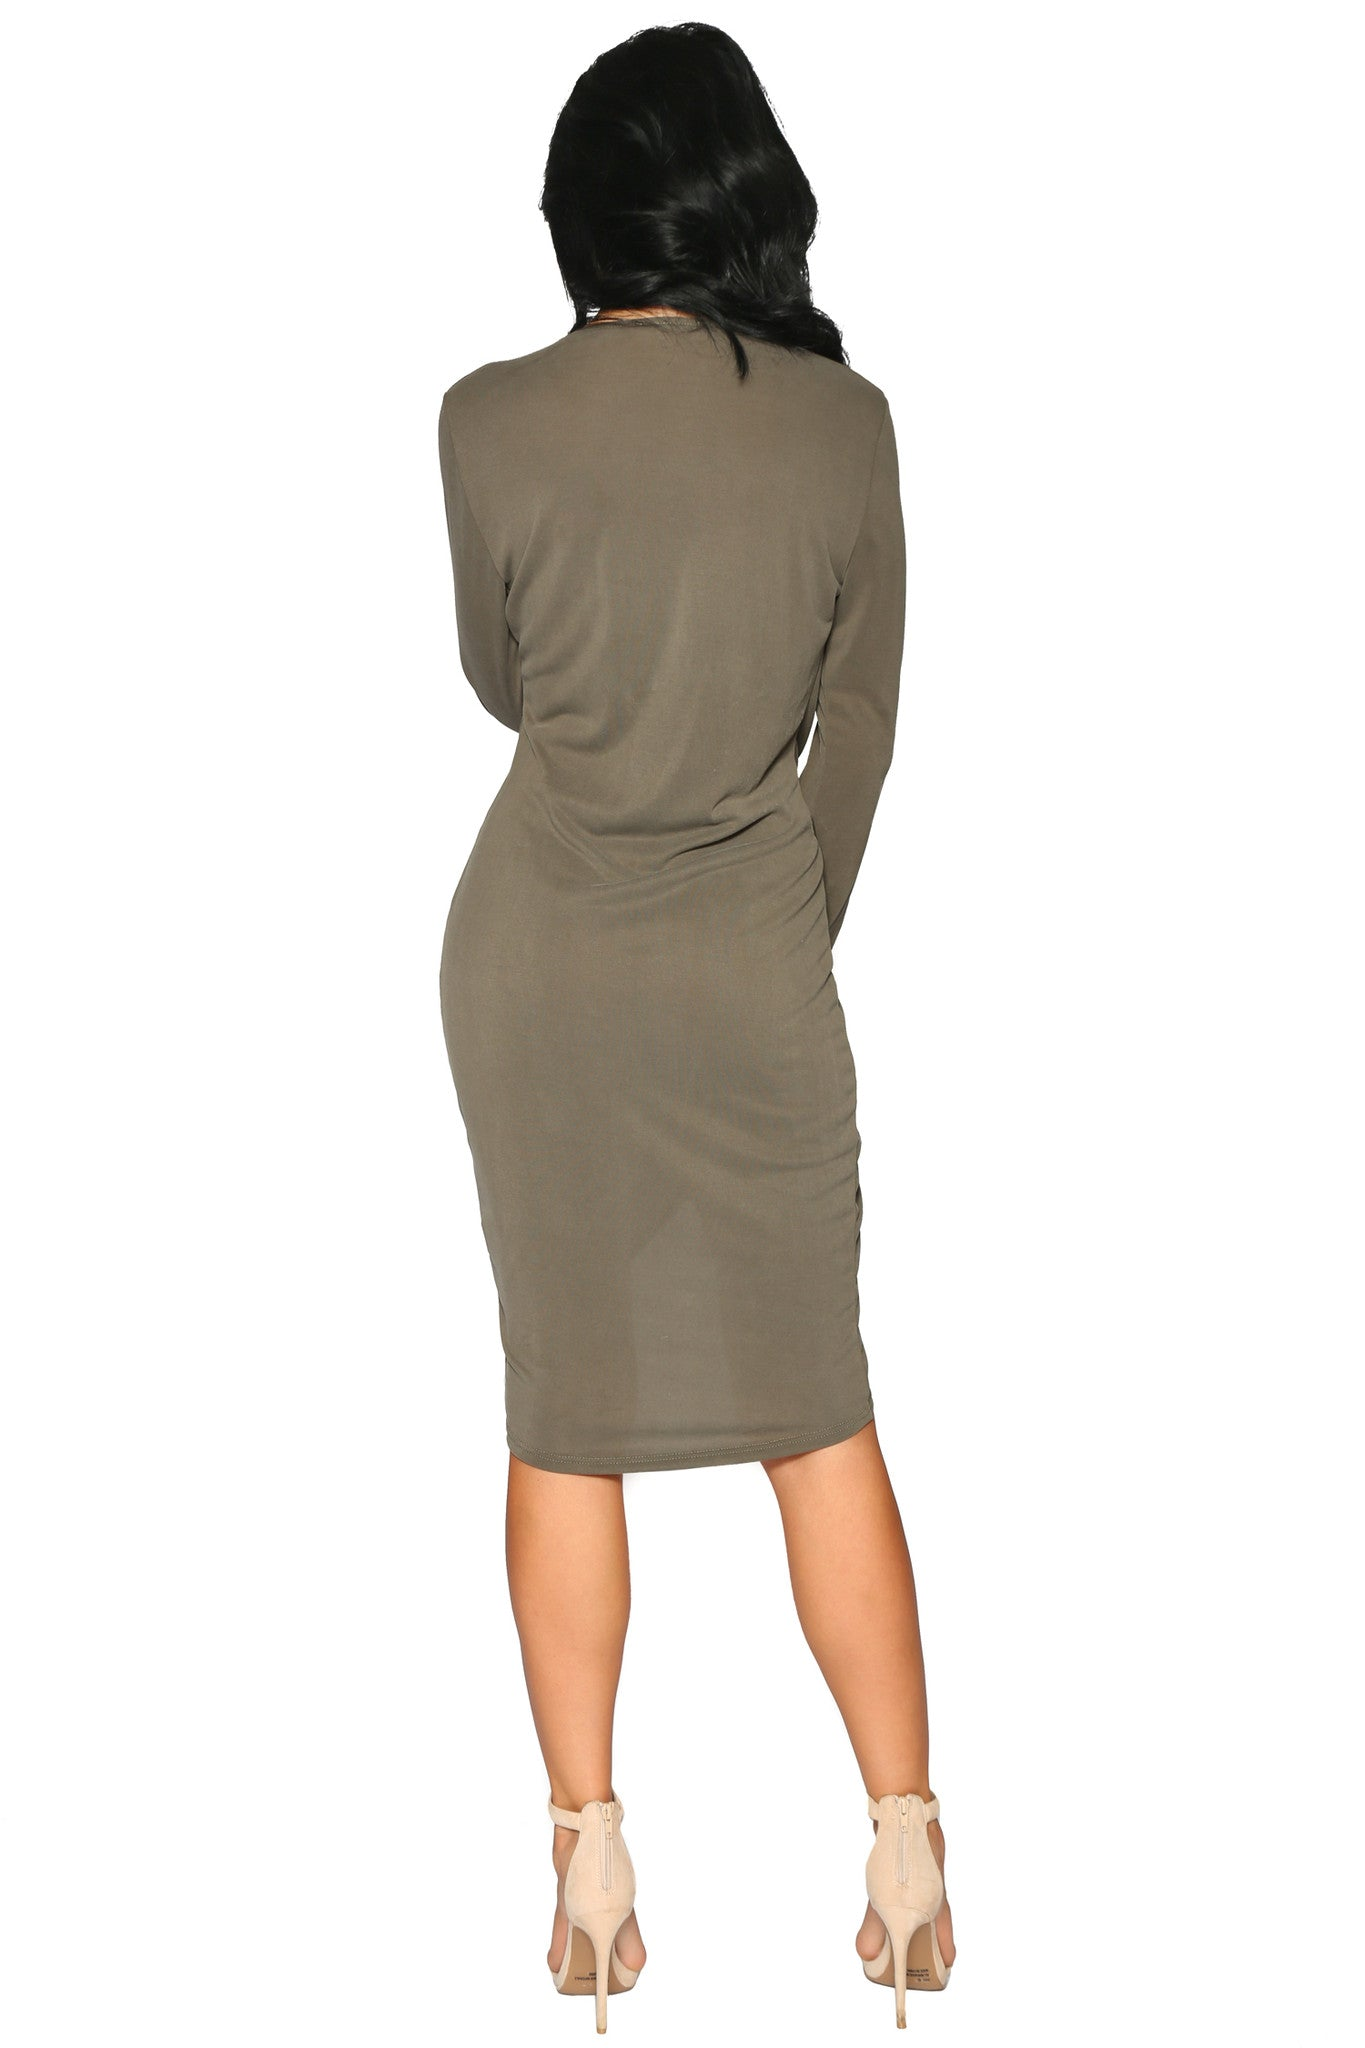 NATALIE DRESS - Glam Envy - 3